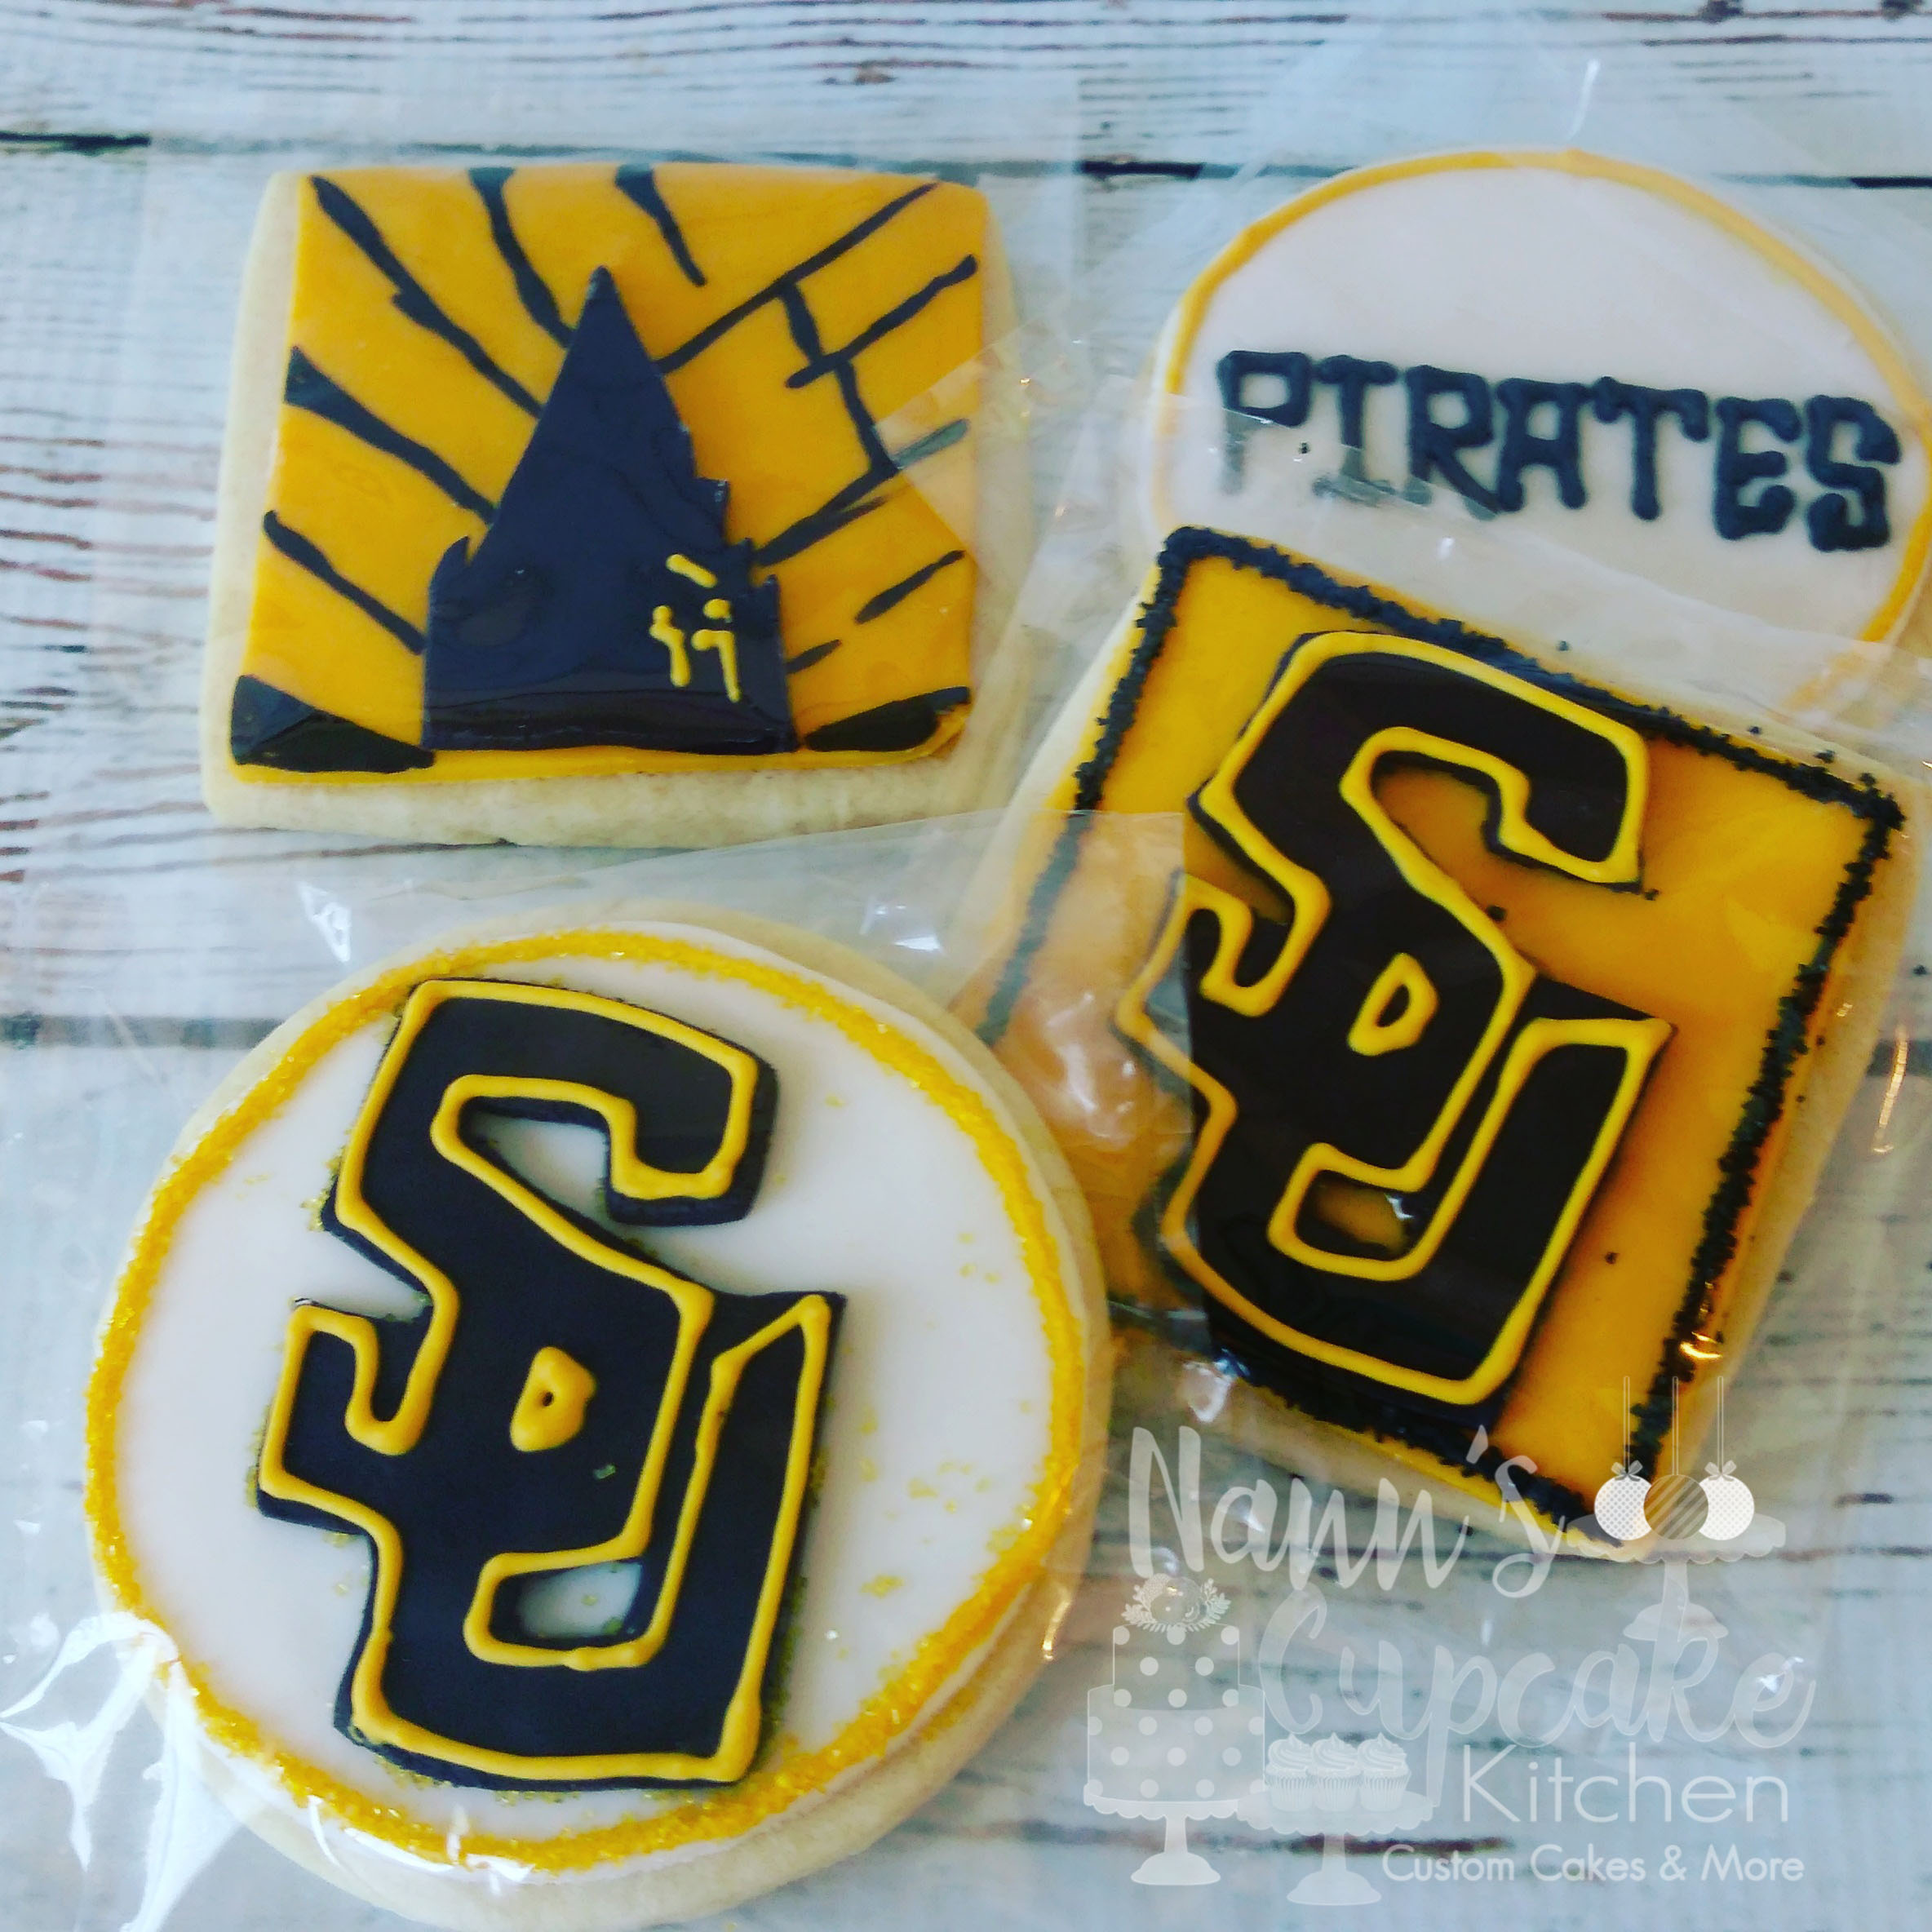 Southwestern Pirates Cookies